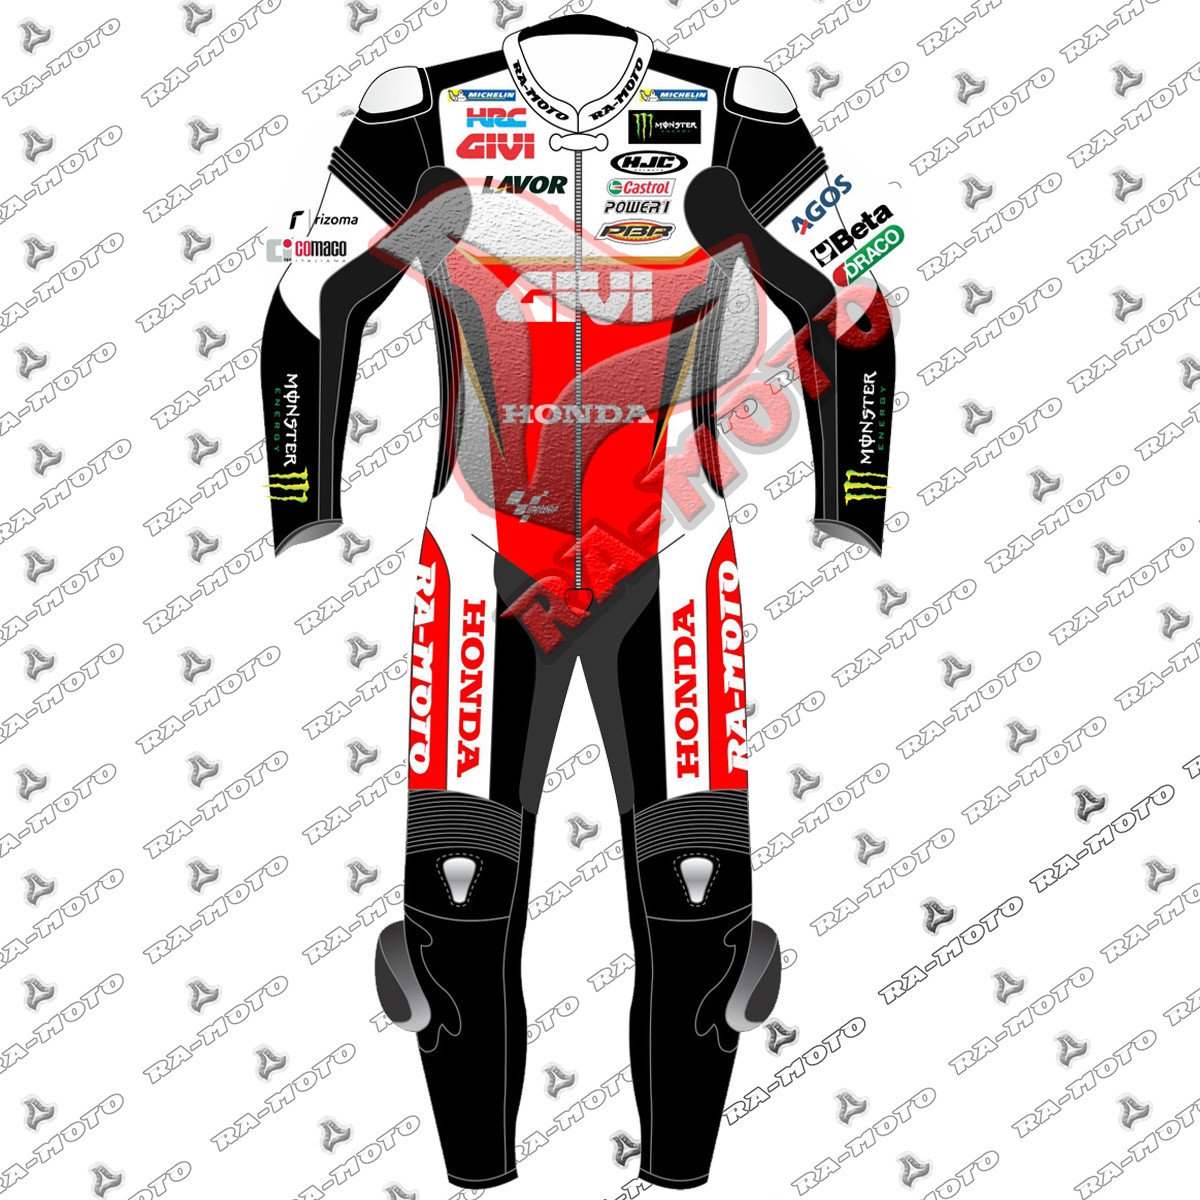 RA-15242 cal-crutchlow-lcr-honda  leather suit 2019